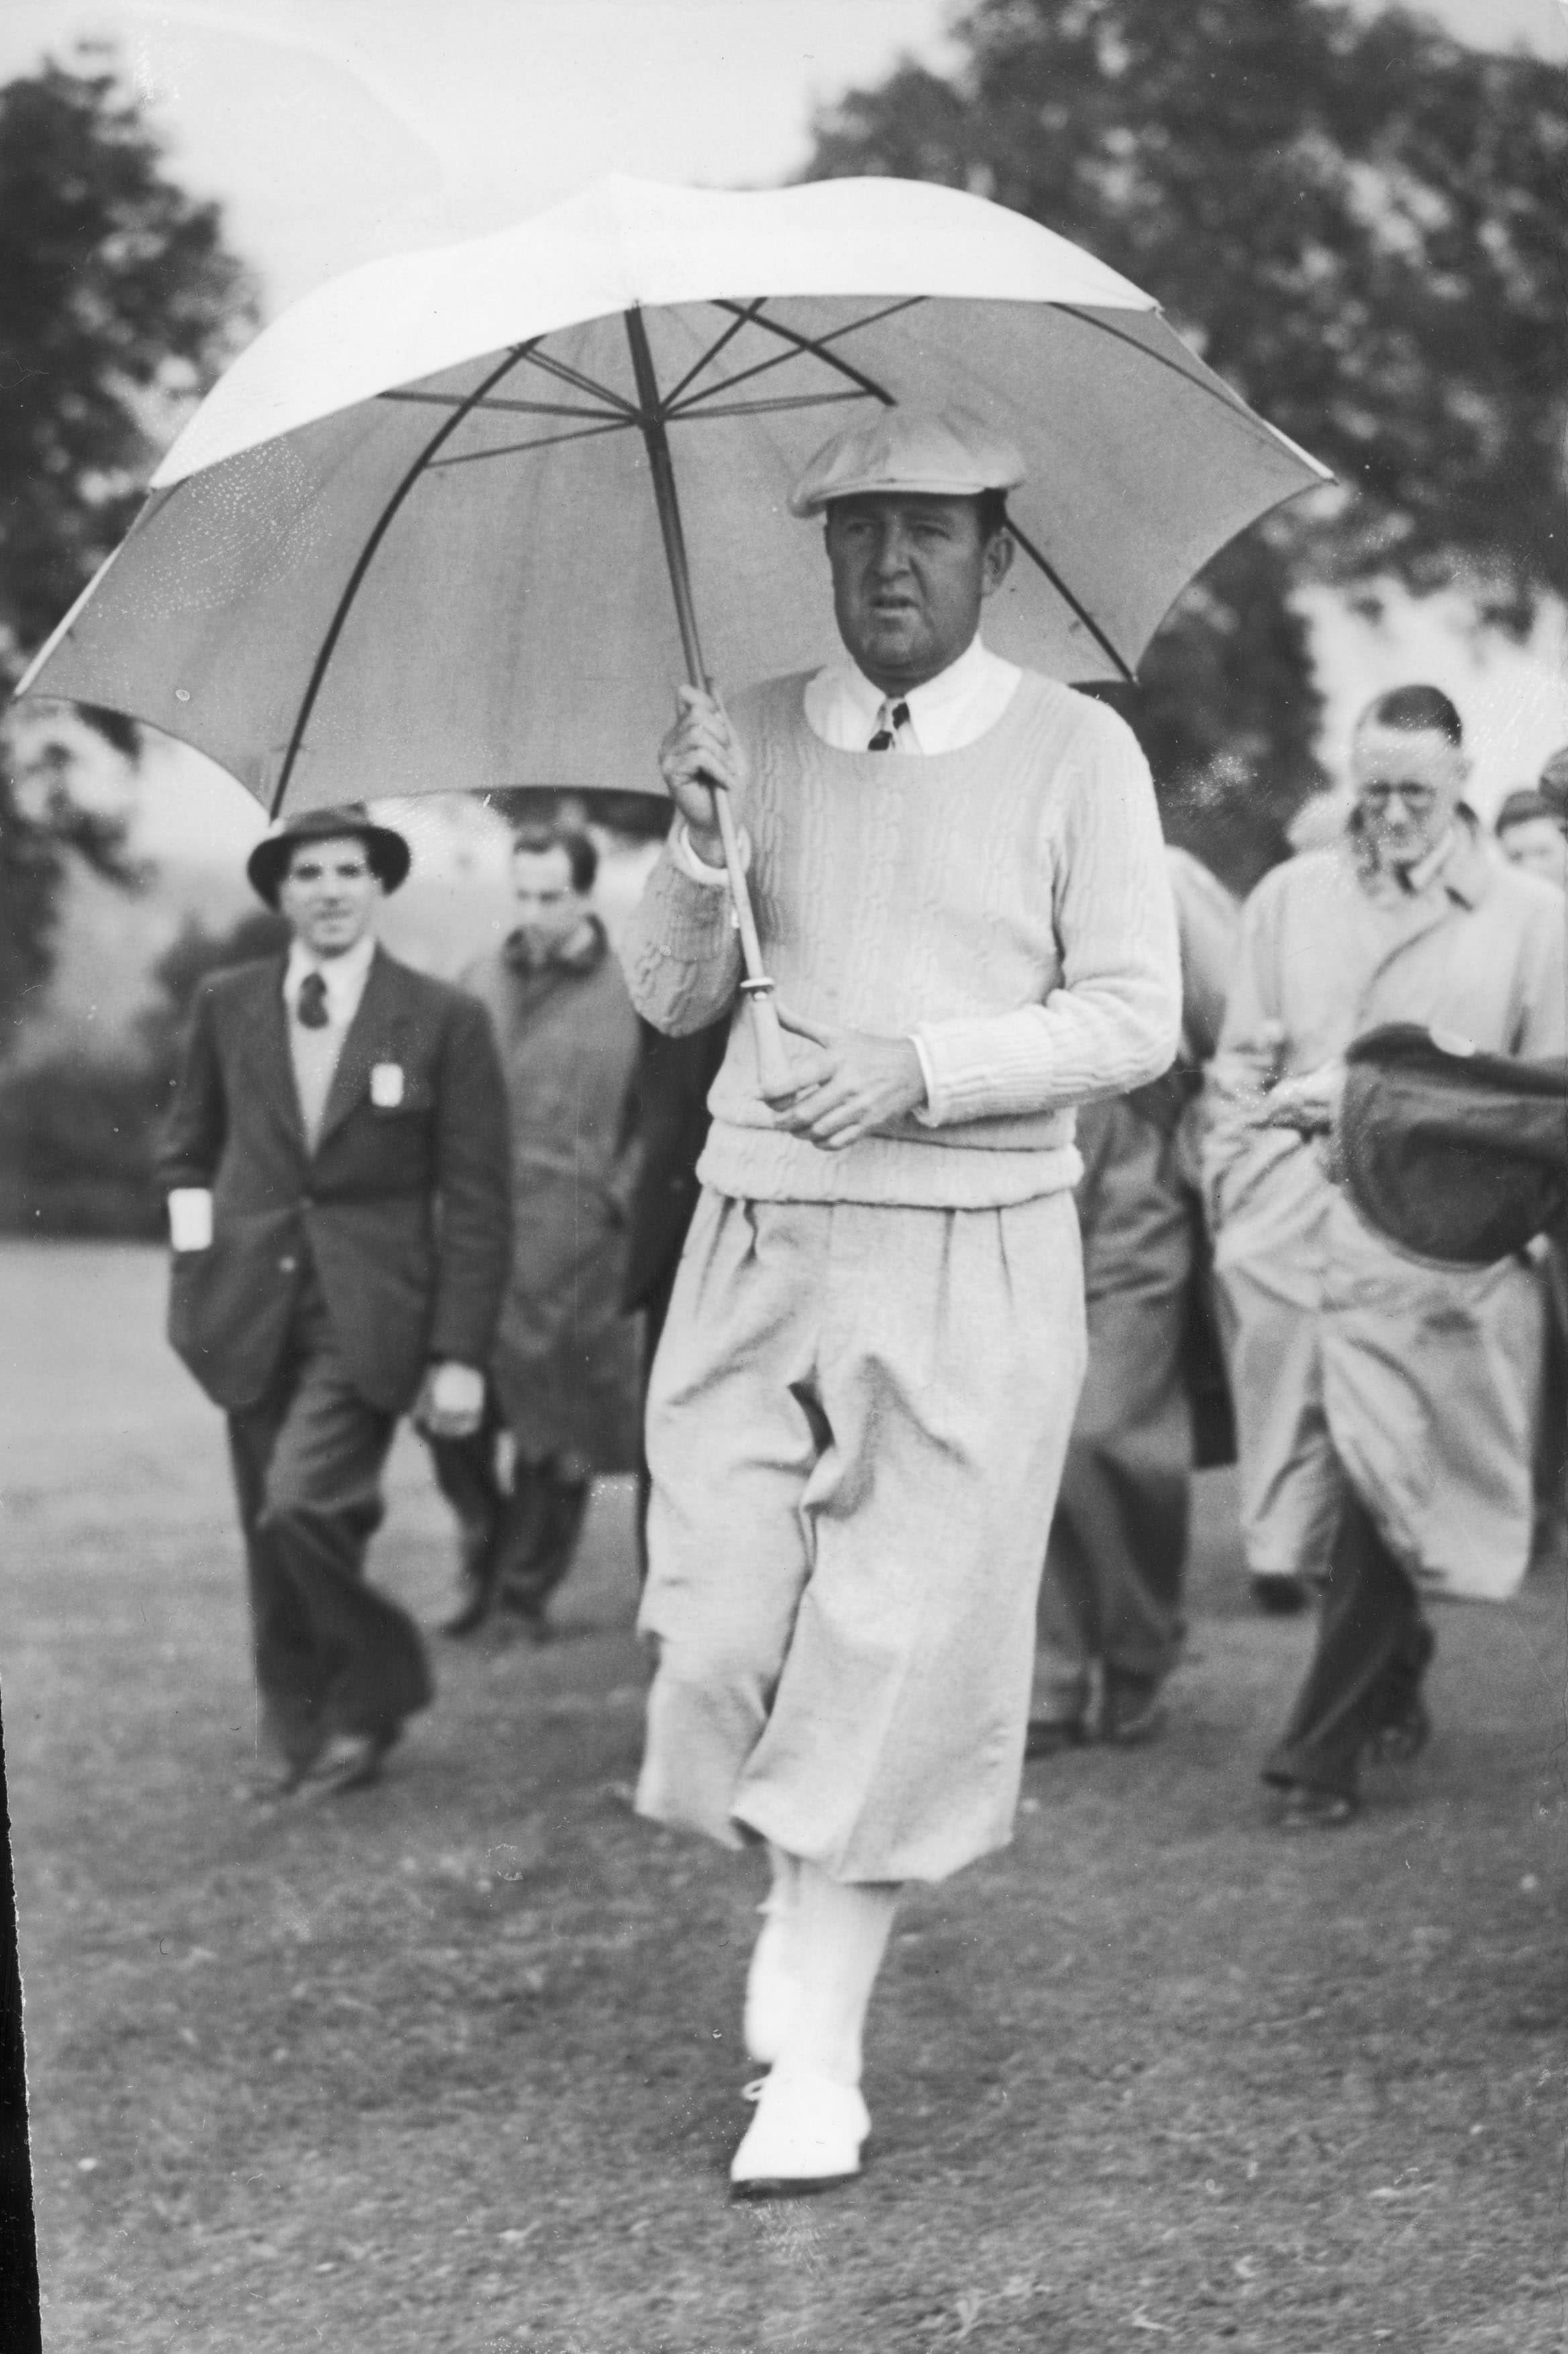 9. 1947: Locke's first PGA Tour win